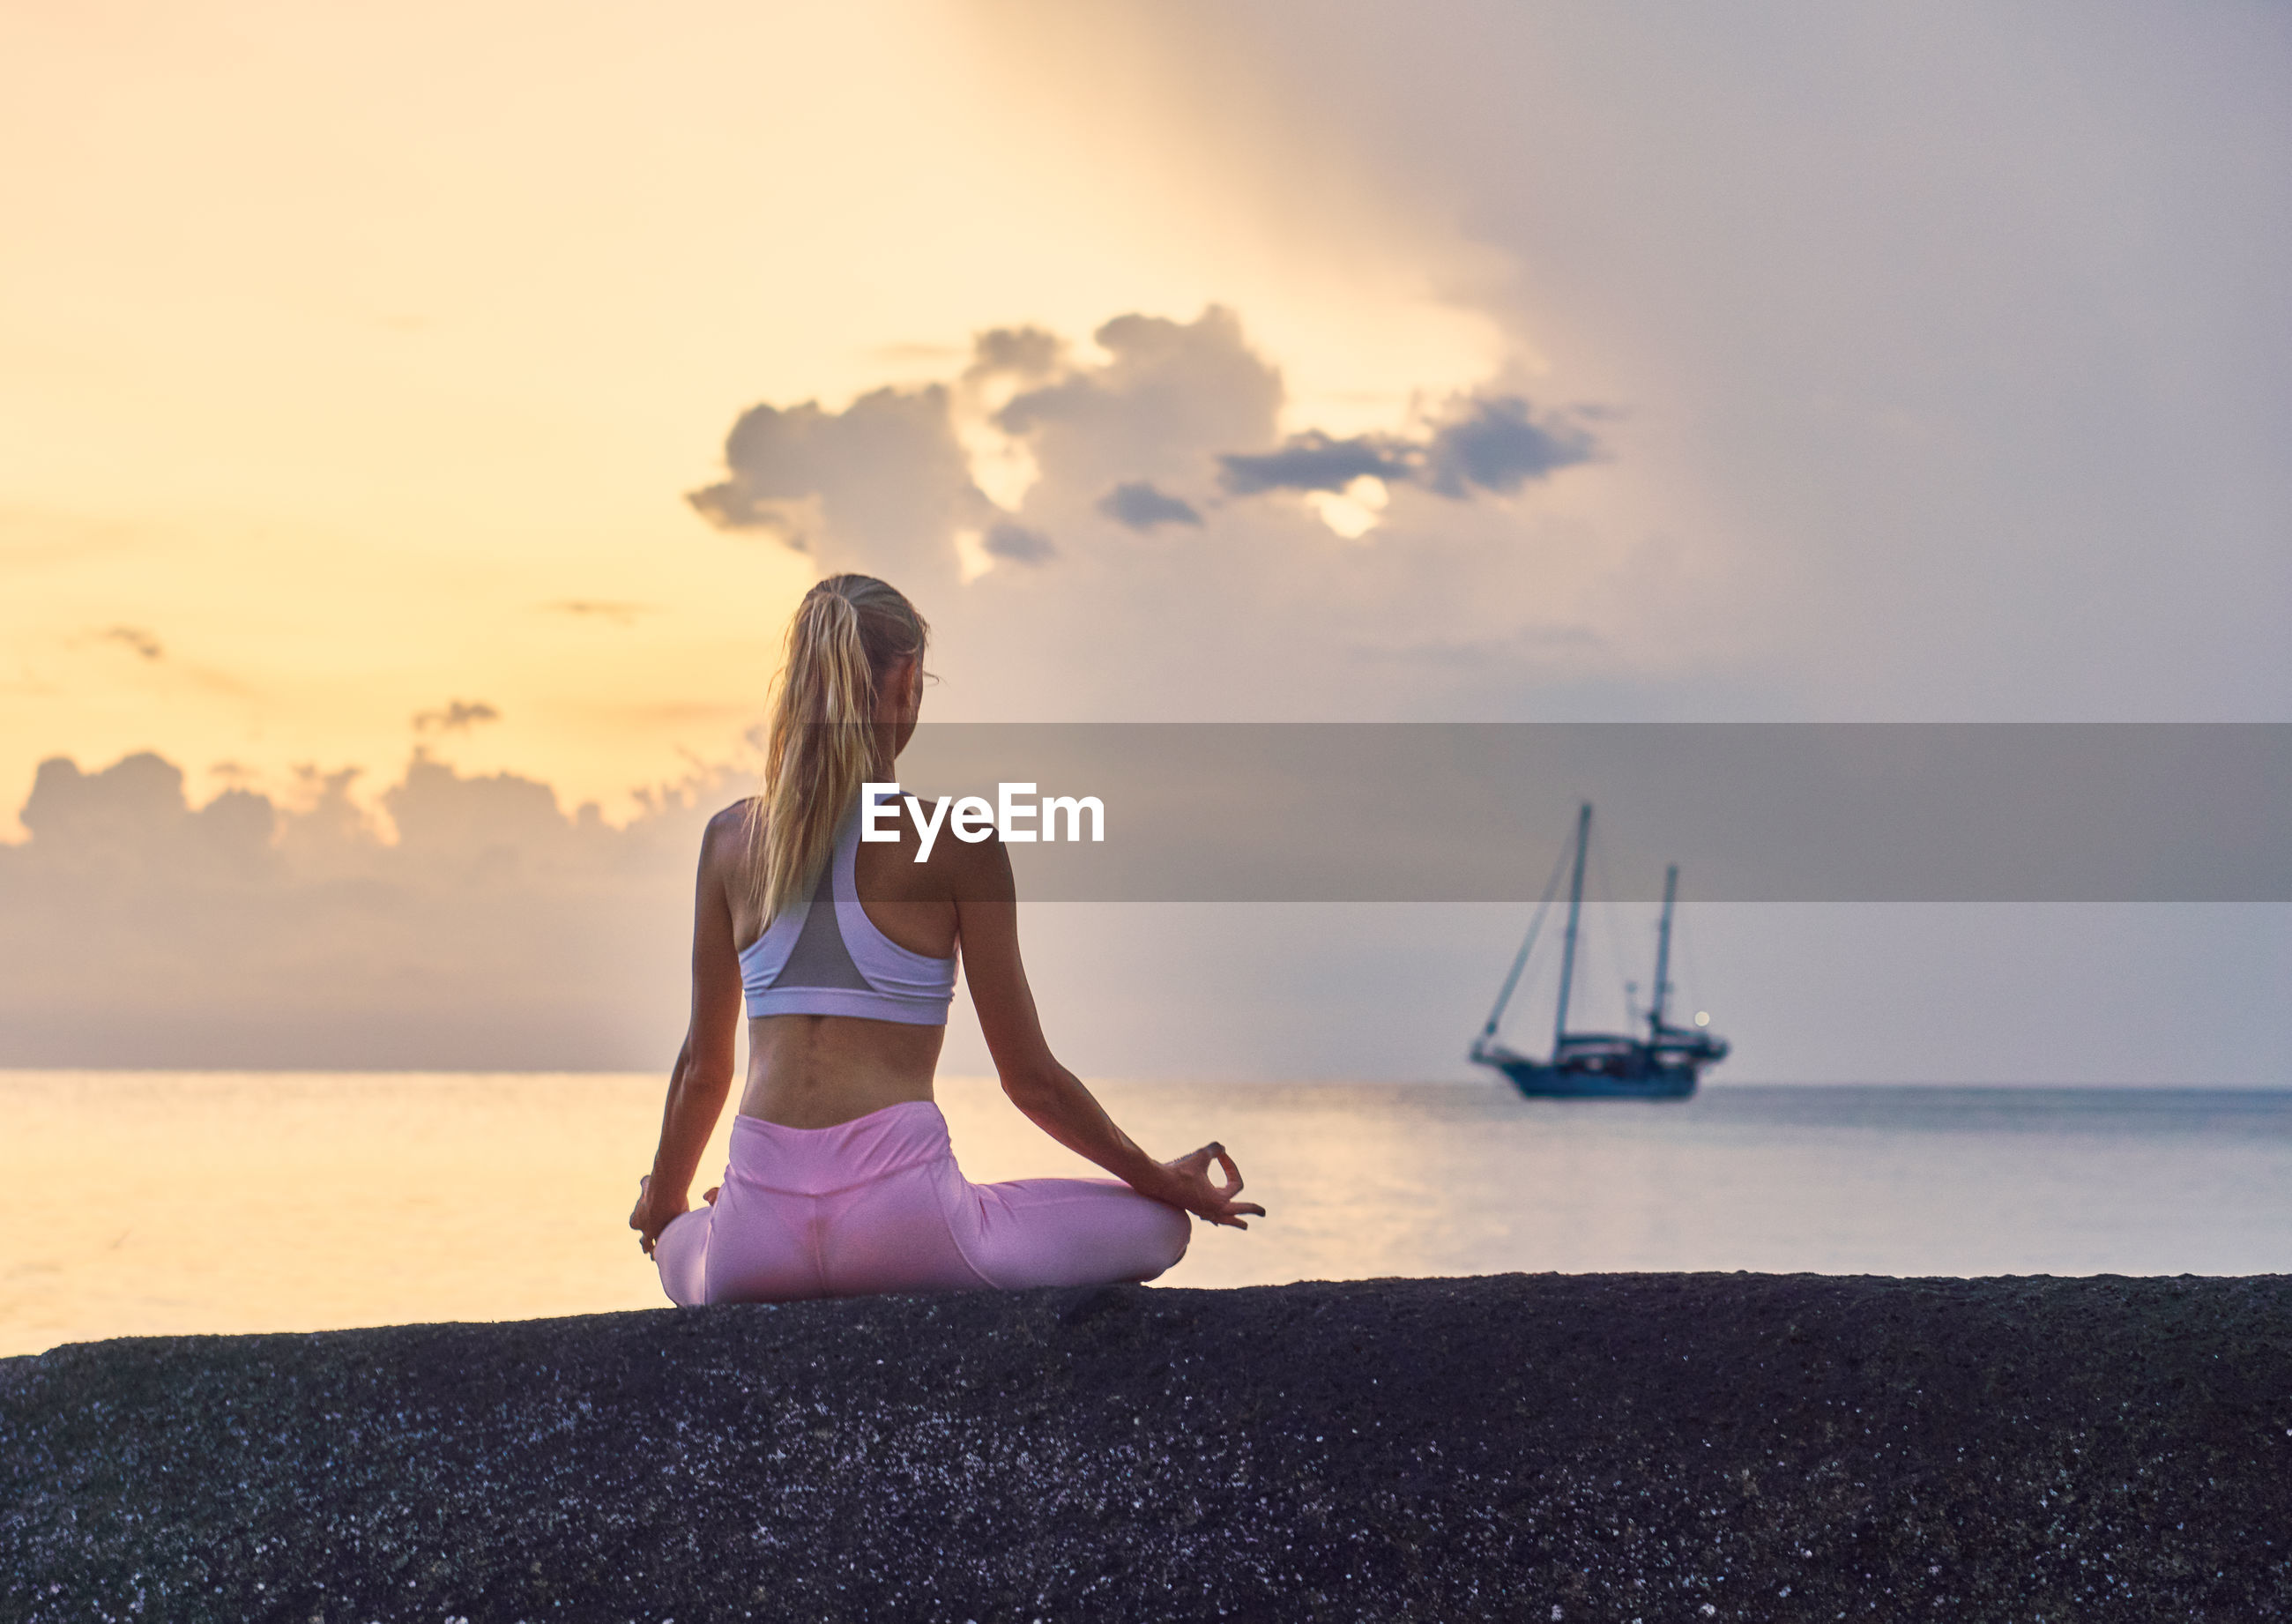 Rear view of woman mediating while sitting at beach against sky during sunset